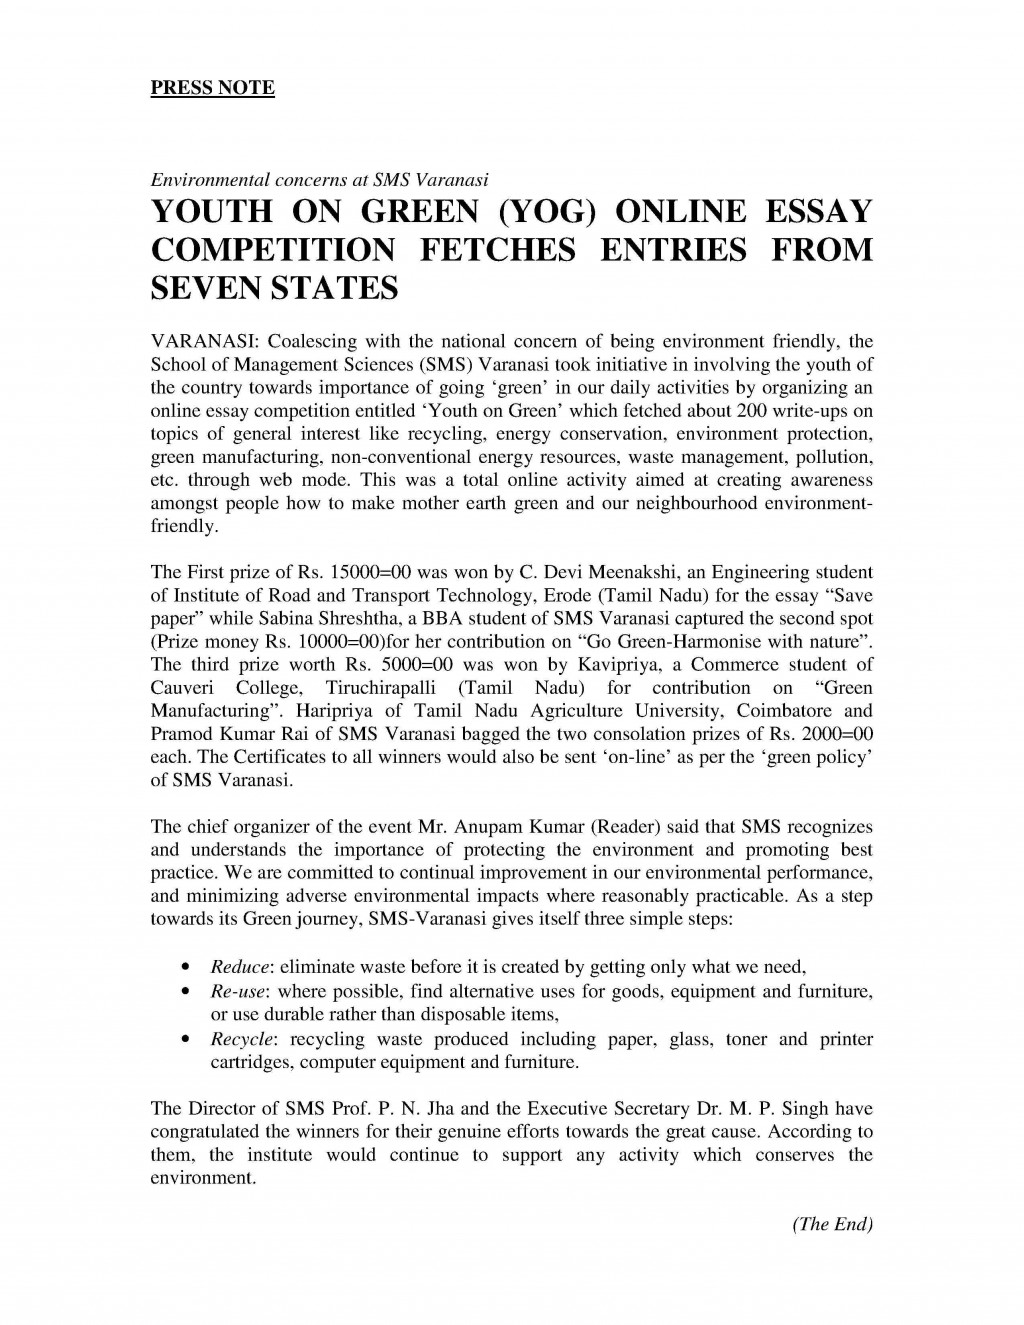 016 Essay About Good Student Example Online Essays Yog Press Report1 Staggering A Responsibilities Of In Urdu Write An What Are The Quality Characteristics Large